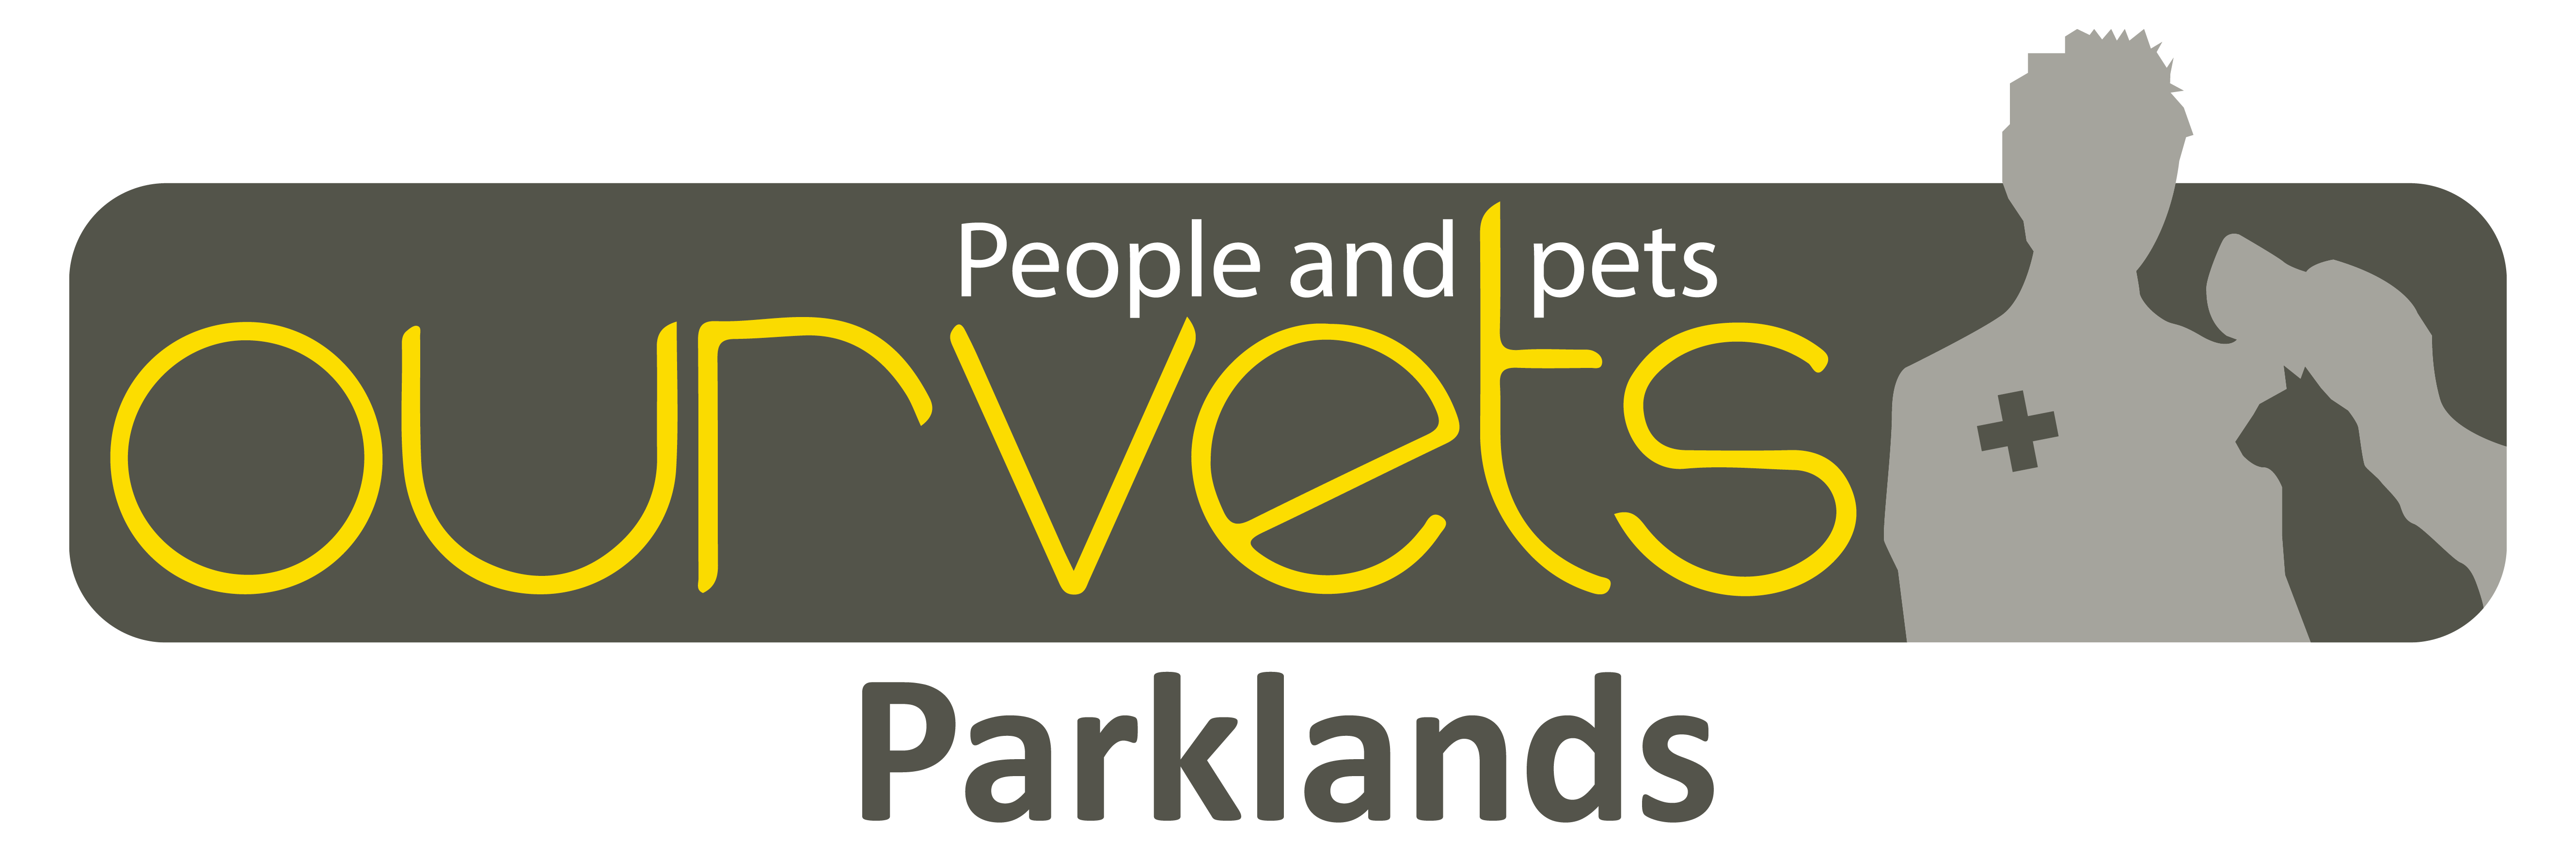 Ourvets Parklands NZ logo